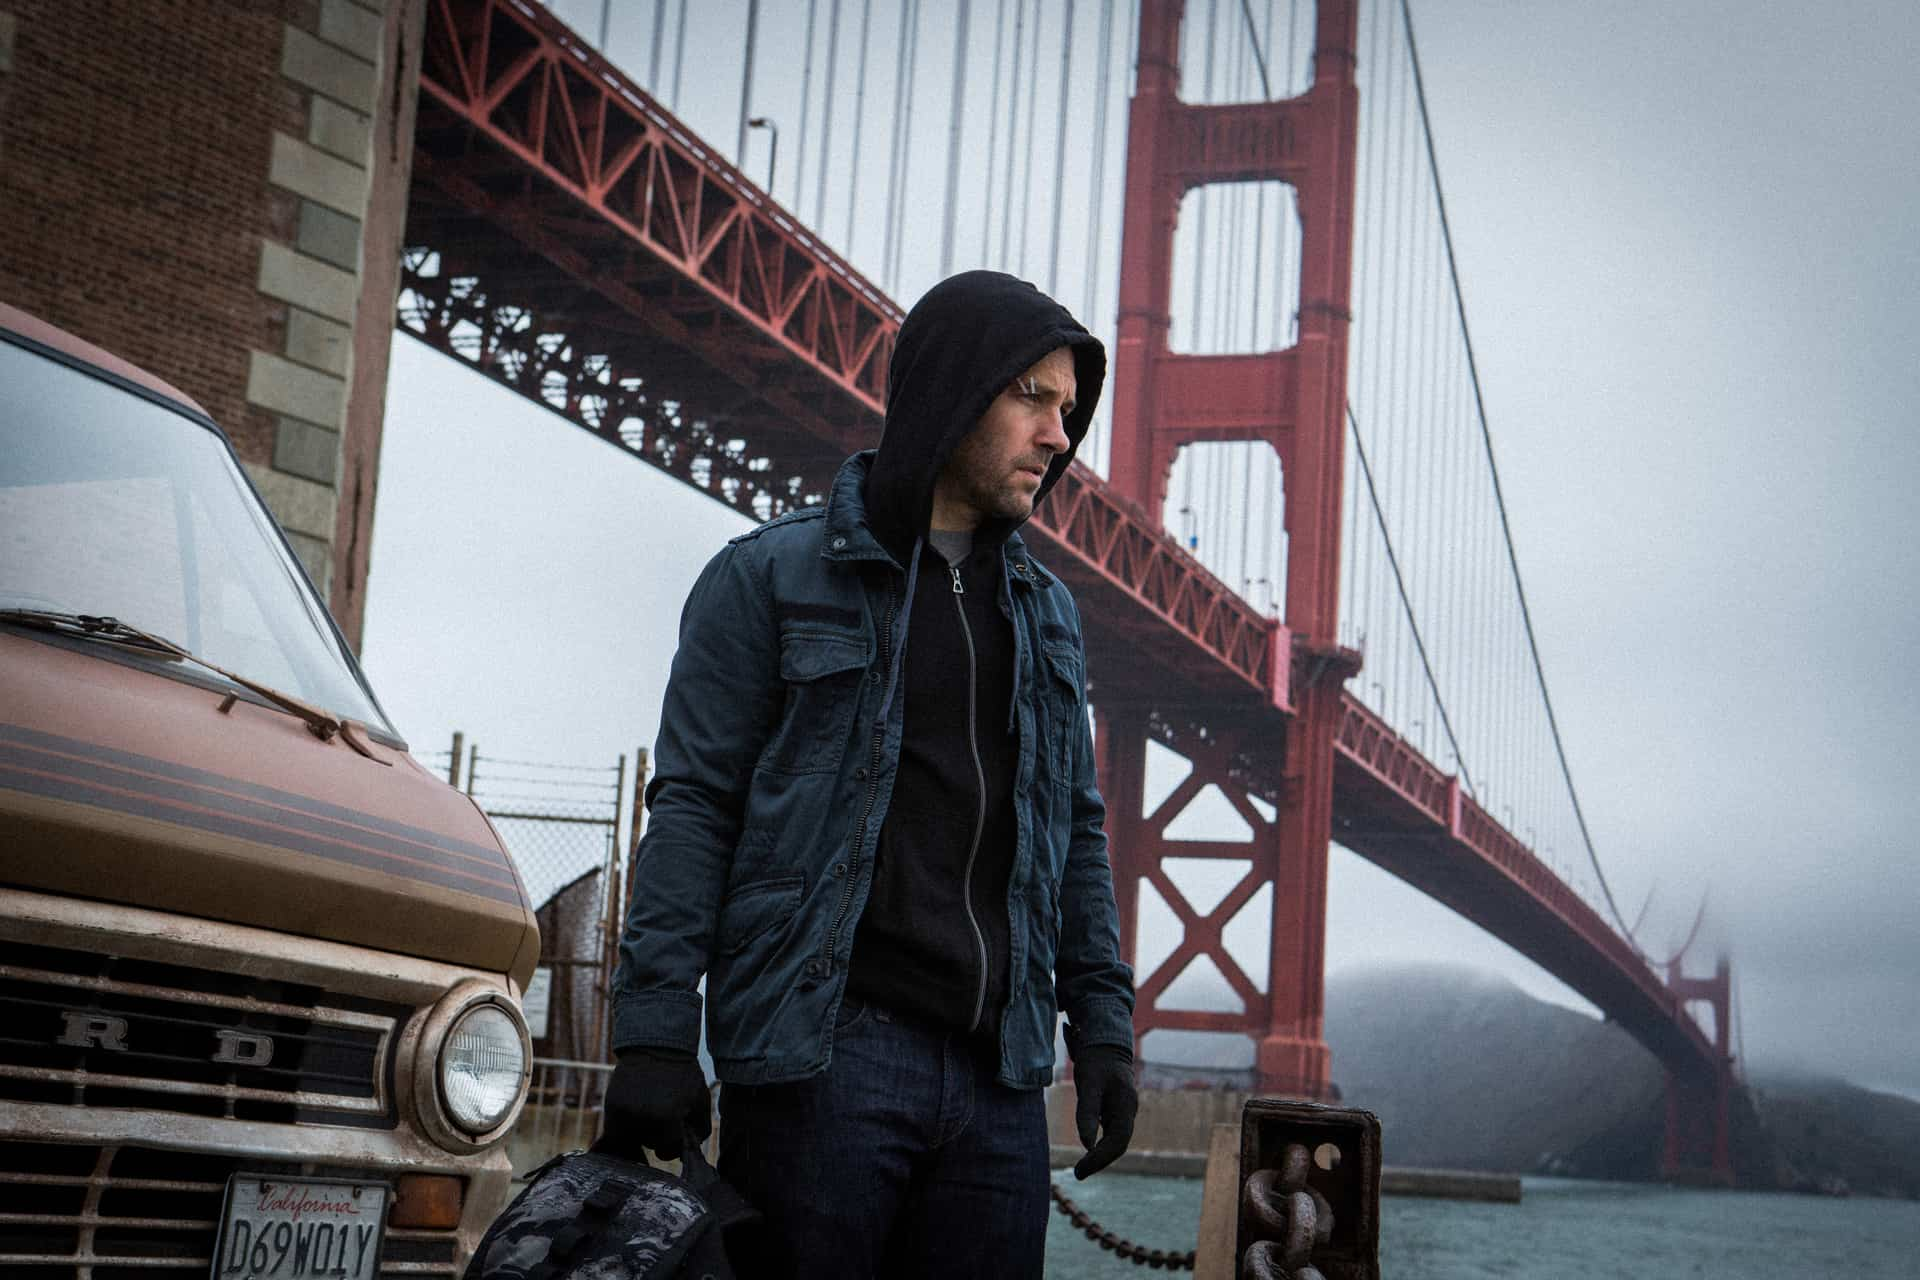 'Ant Man' – 1st Official Photo From San Francisco Shoot